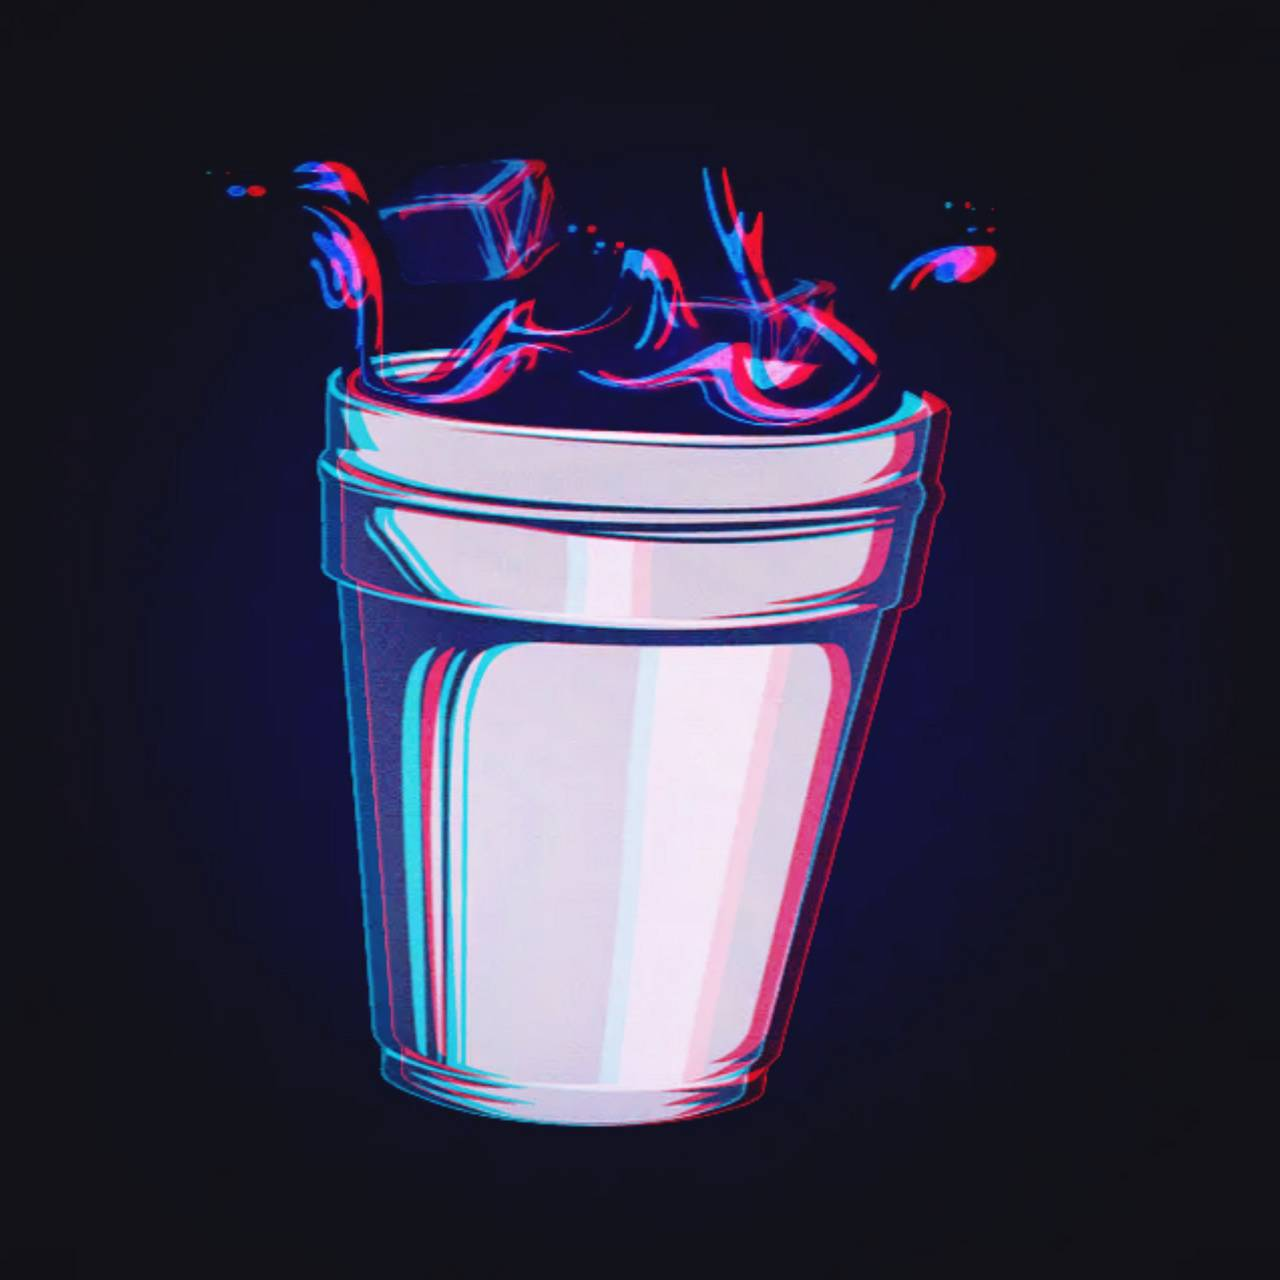 Lean cup wallpaper by nosbor777 - 20